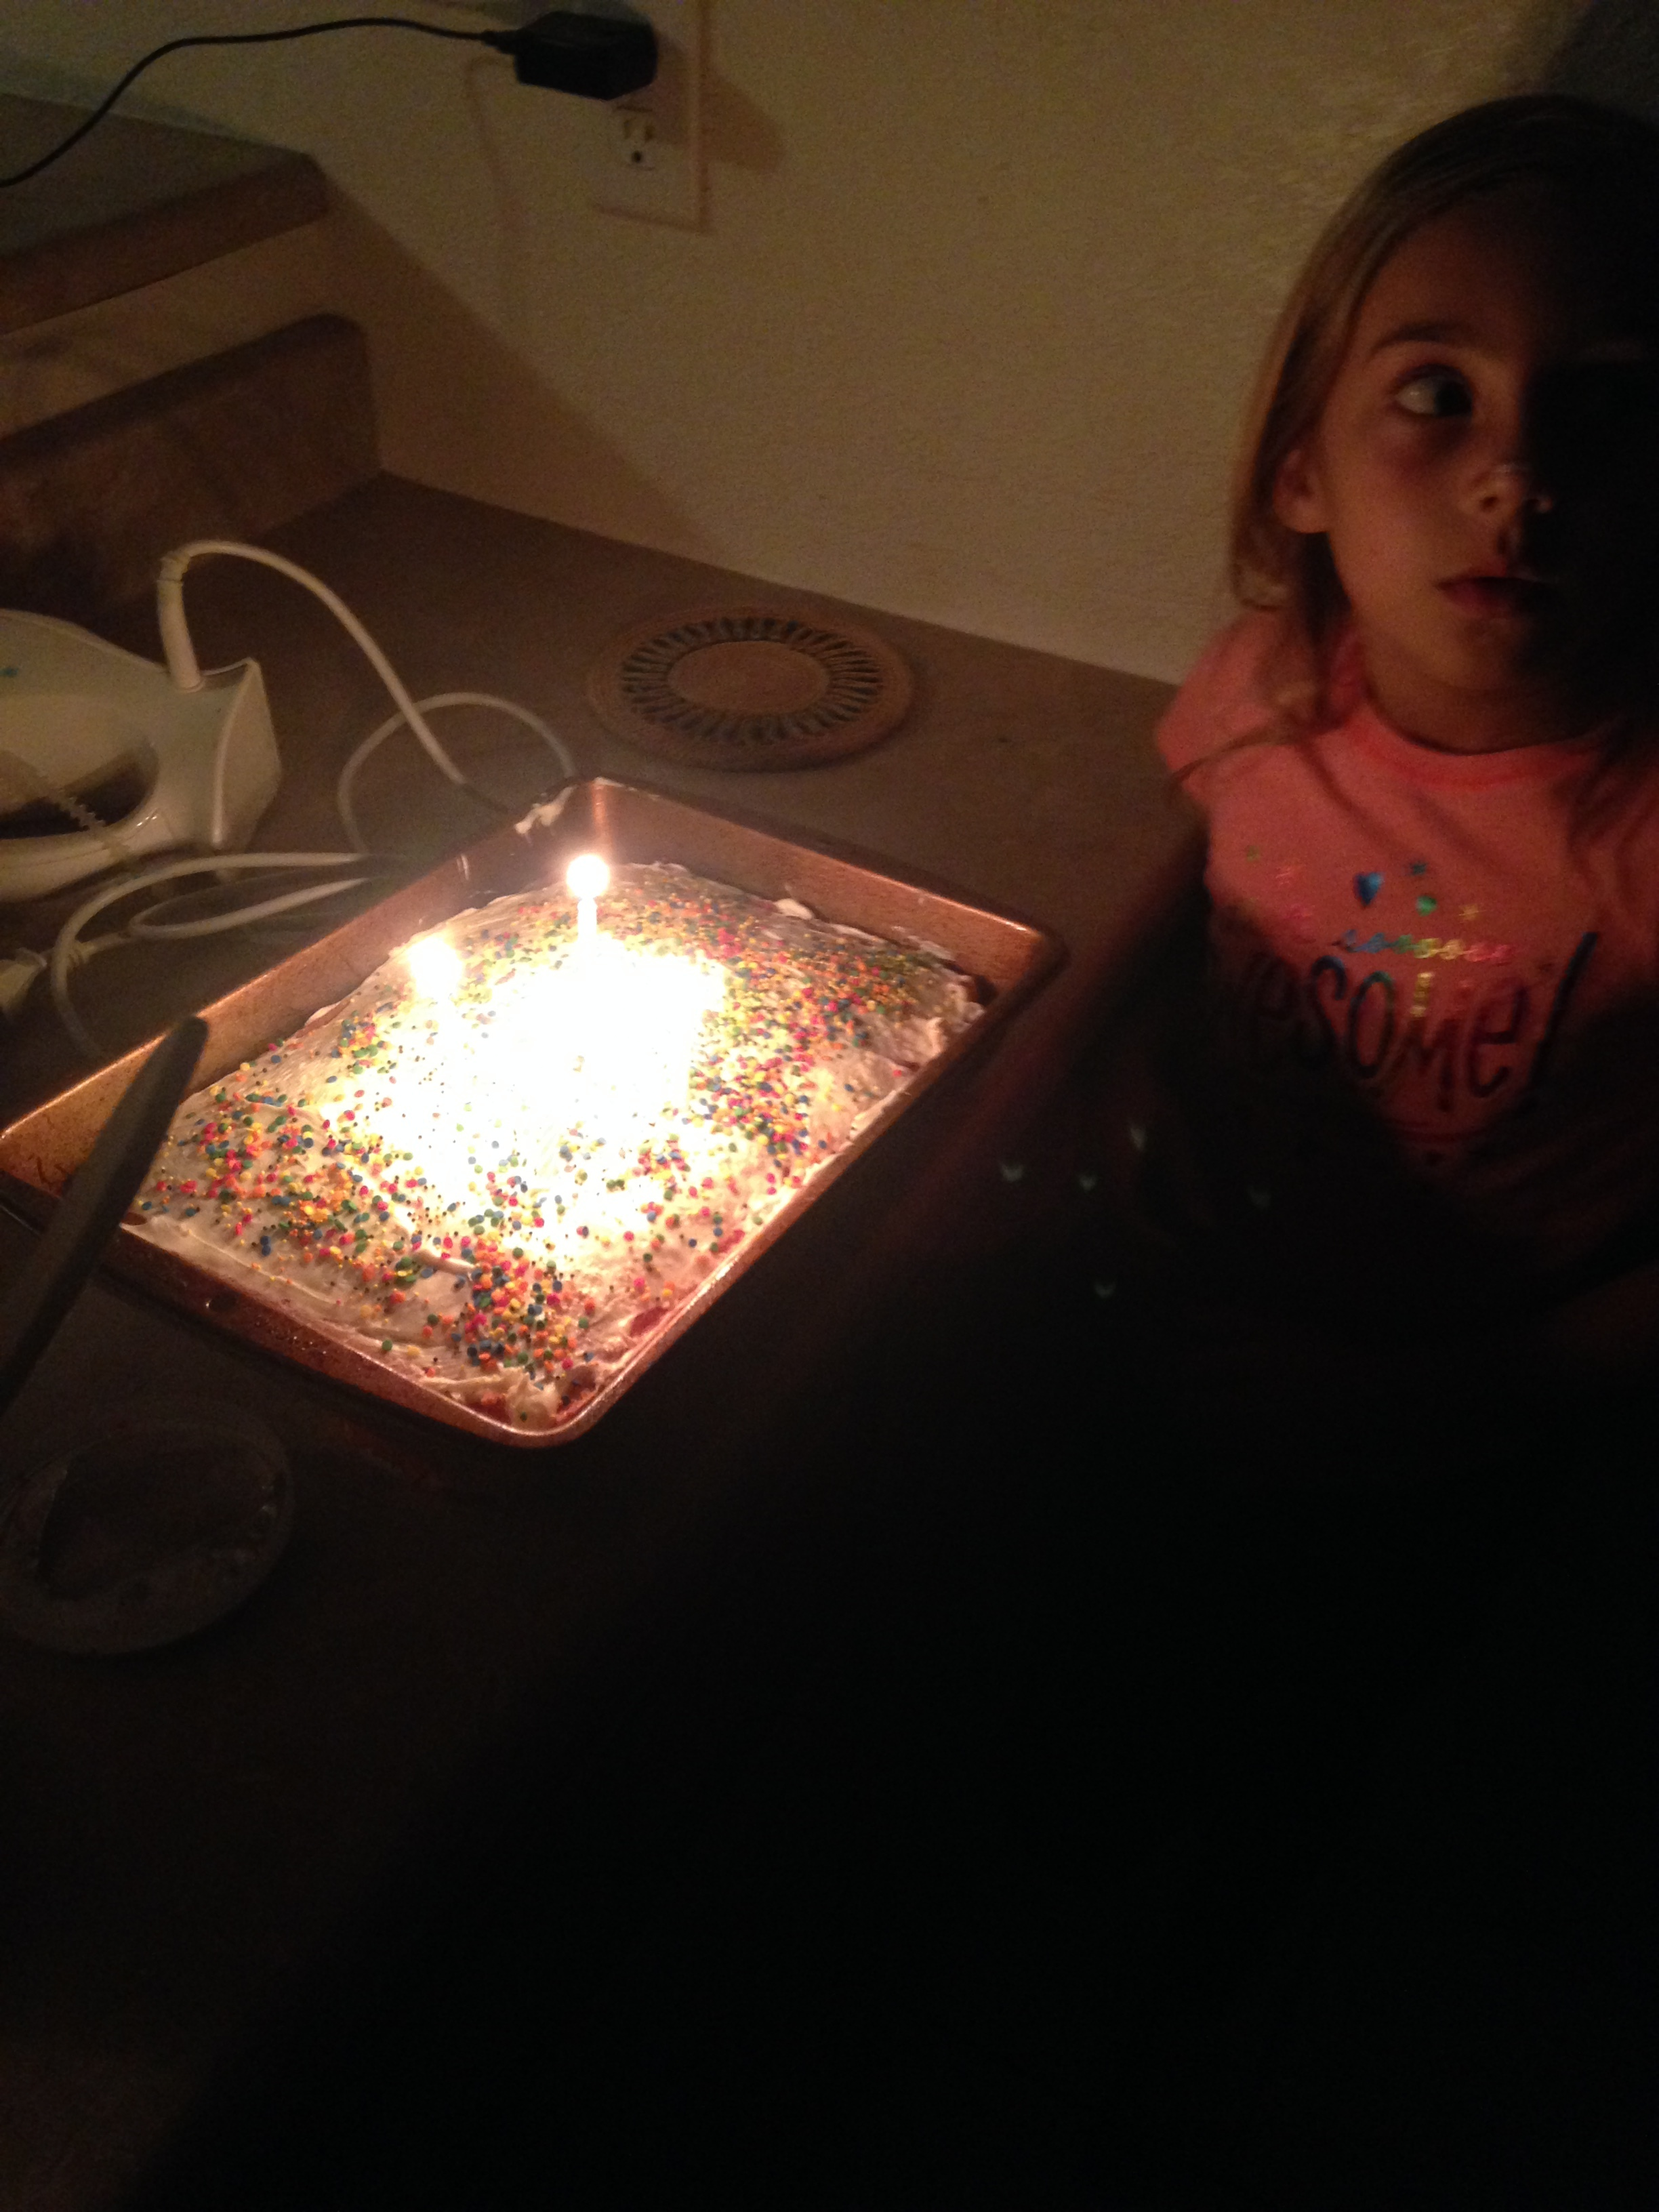 As a family we always finish out my vacation by baking a cake and celebrating everybody's upcoming birthdays. Happy 7th birthday Ella. Happy 21st birthday to myself. A very big happy 40th birthday to my mom! You're so old hahaha.